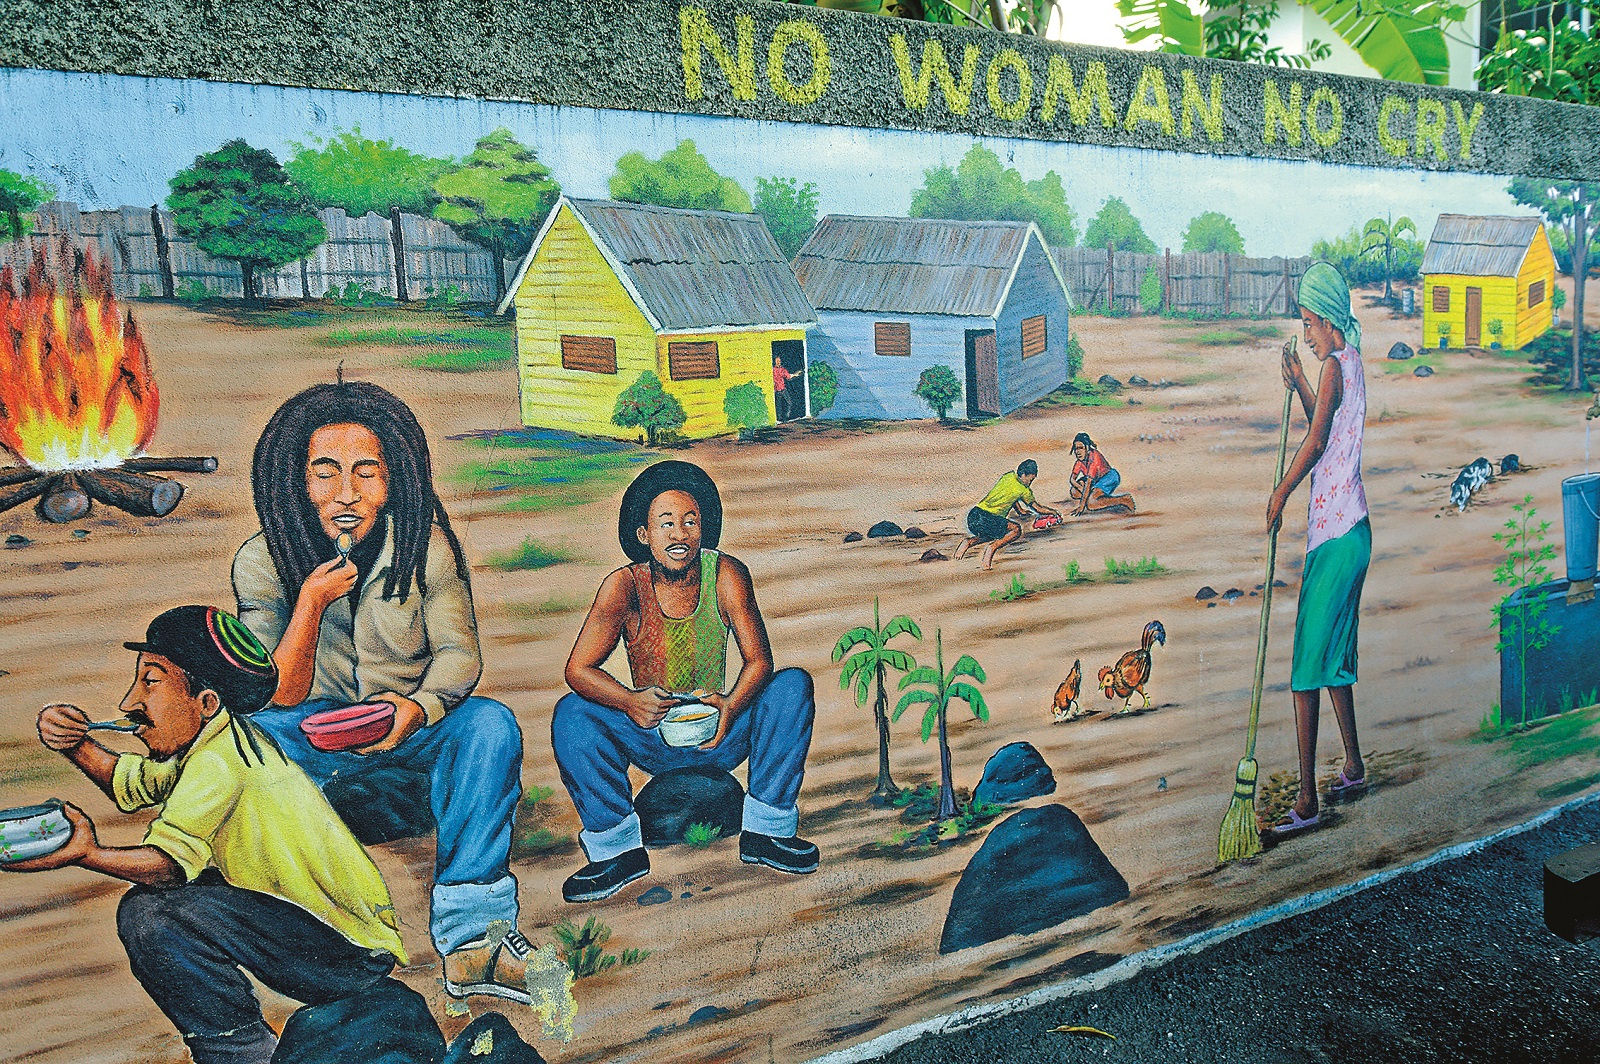 Jamaica, Surrey County, Parish of Kingston, Kingston, Bob Marley Museum, mural painted by the artist Jimmy Stewart featuring the traditional life of a village in Jamaica